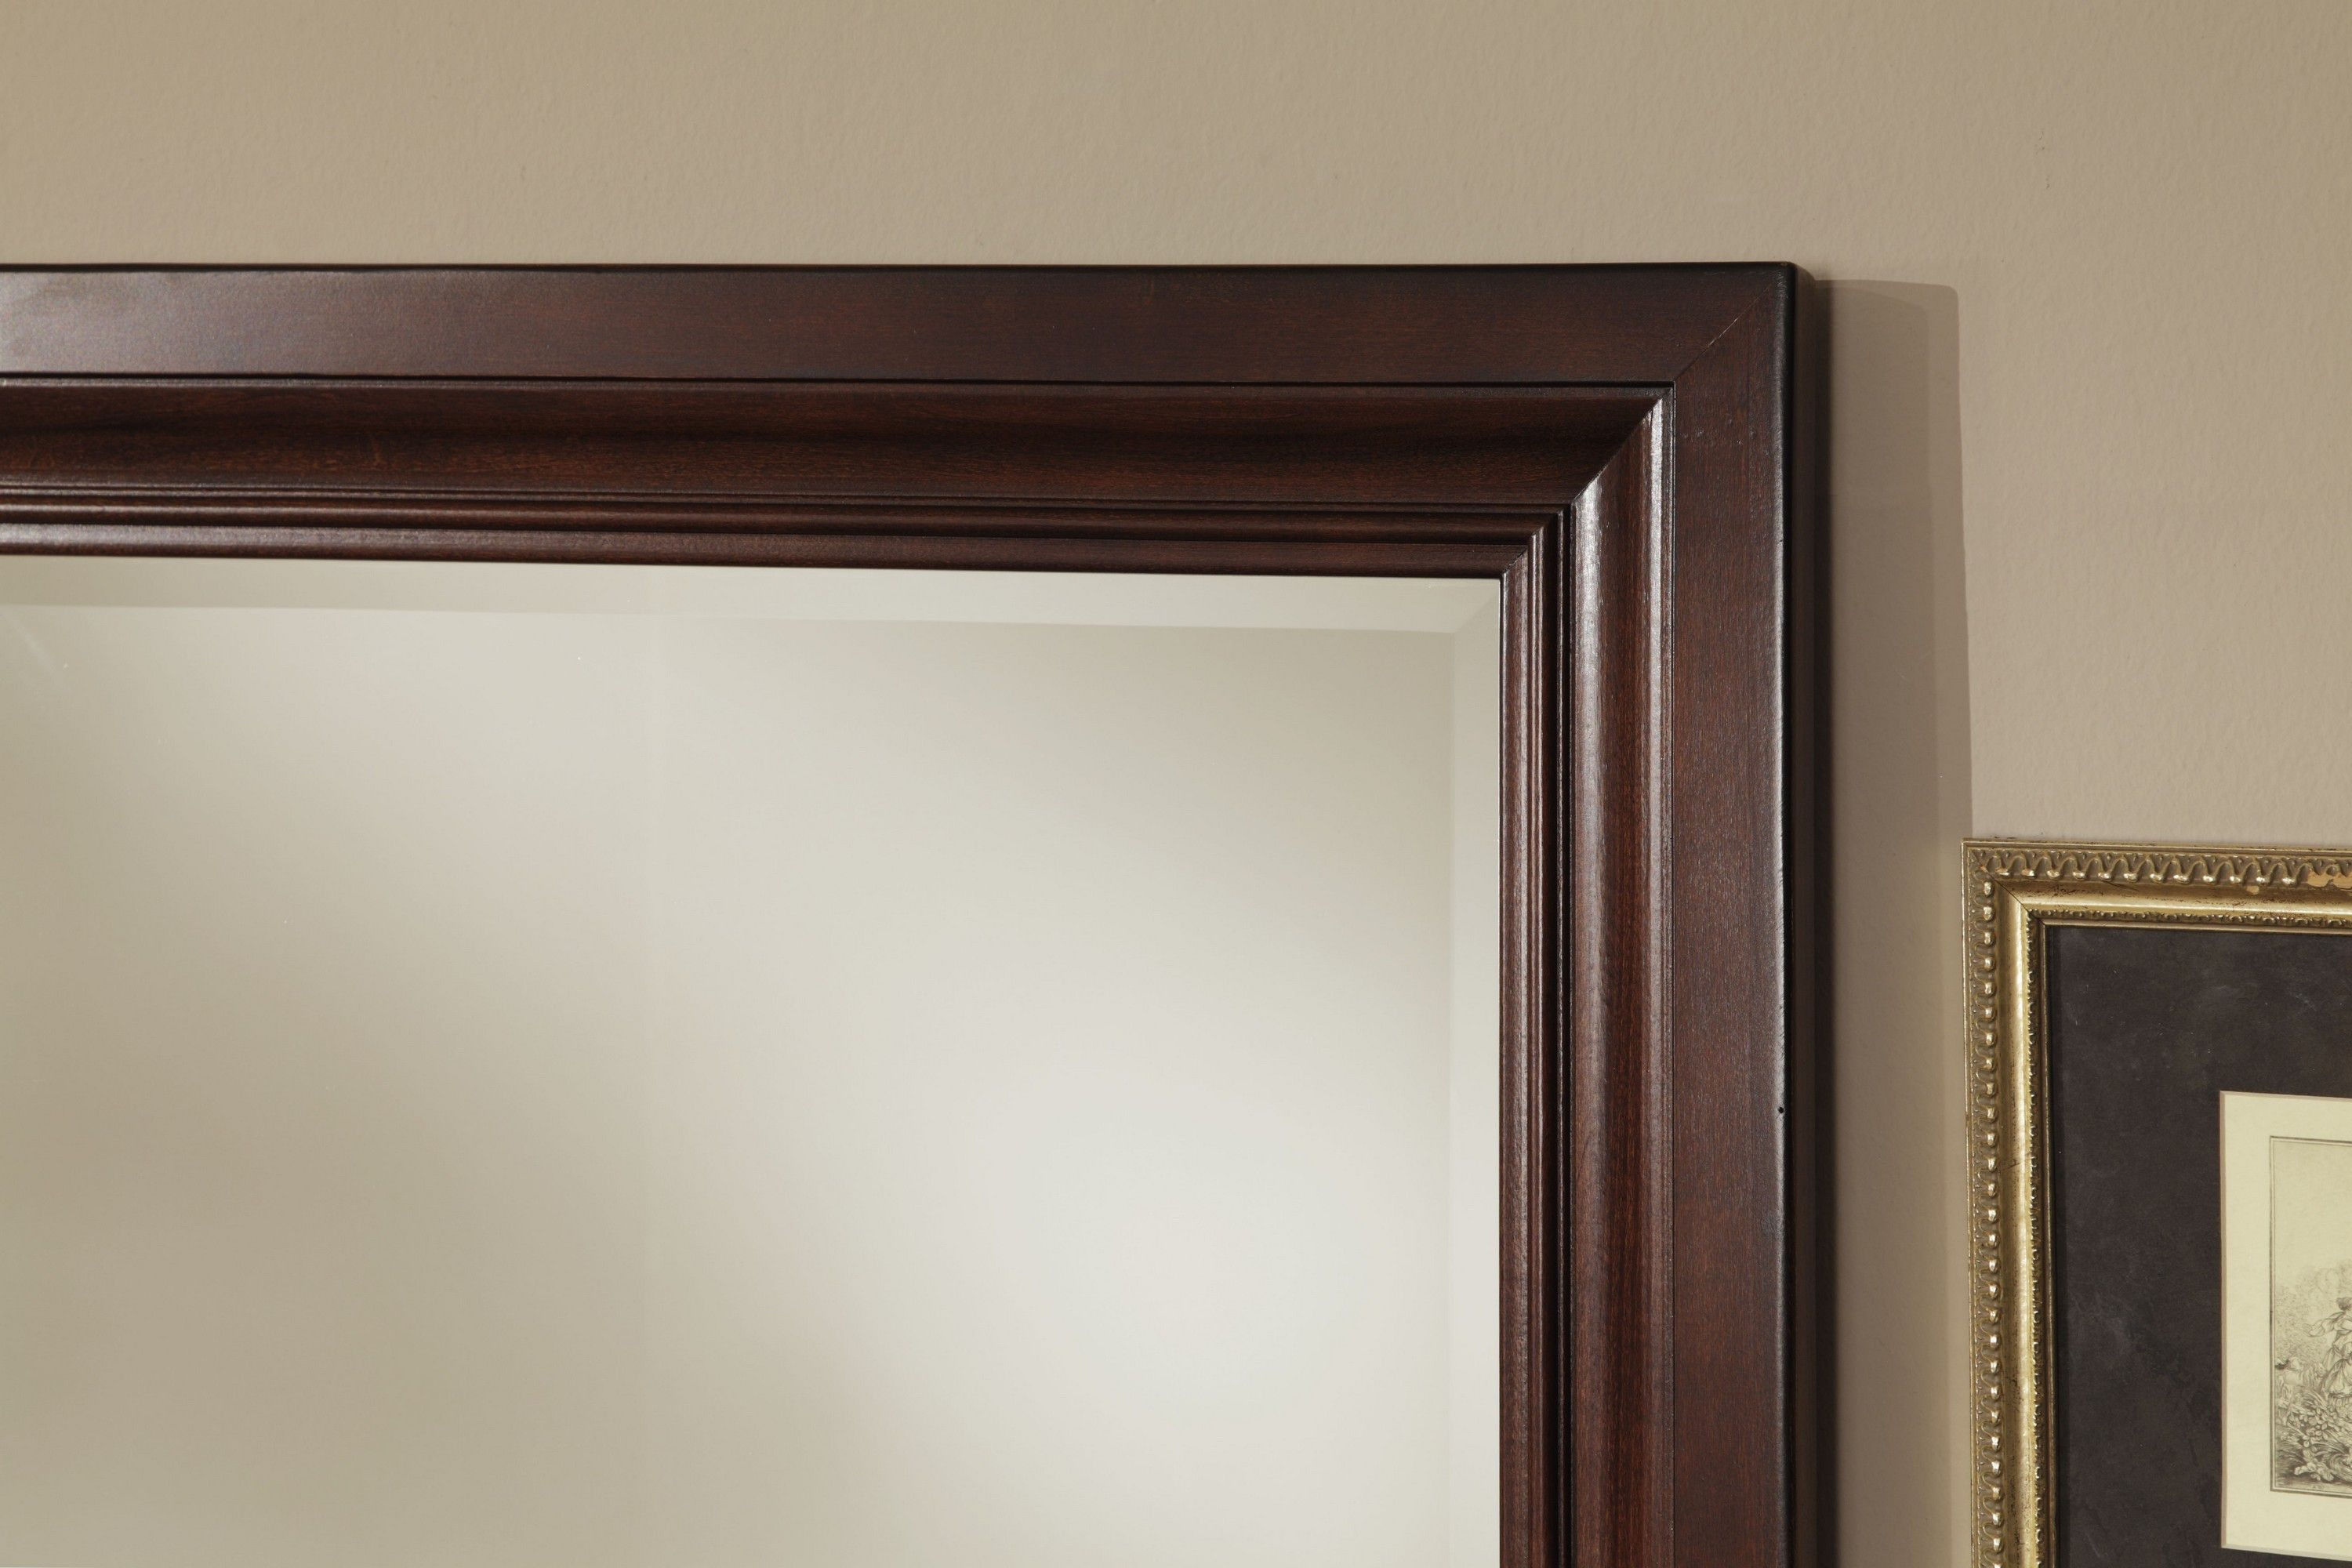 Vaughan Bassett Furniture Company Landscape Mirror 530 446